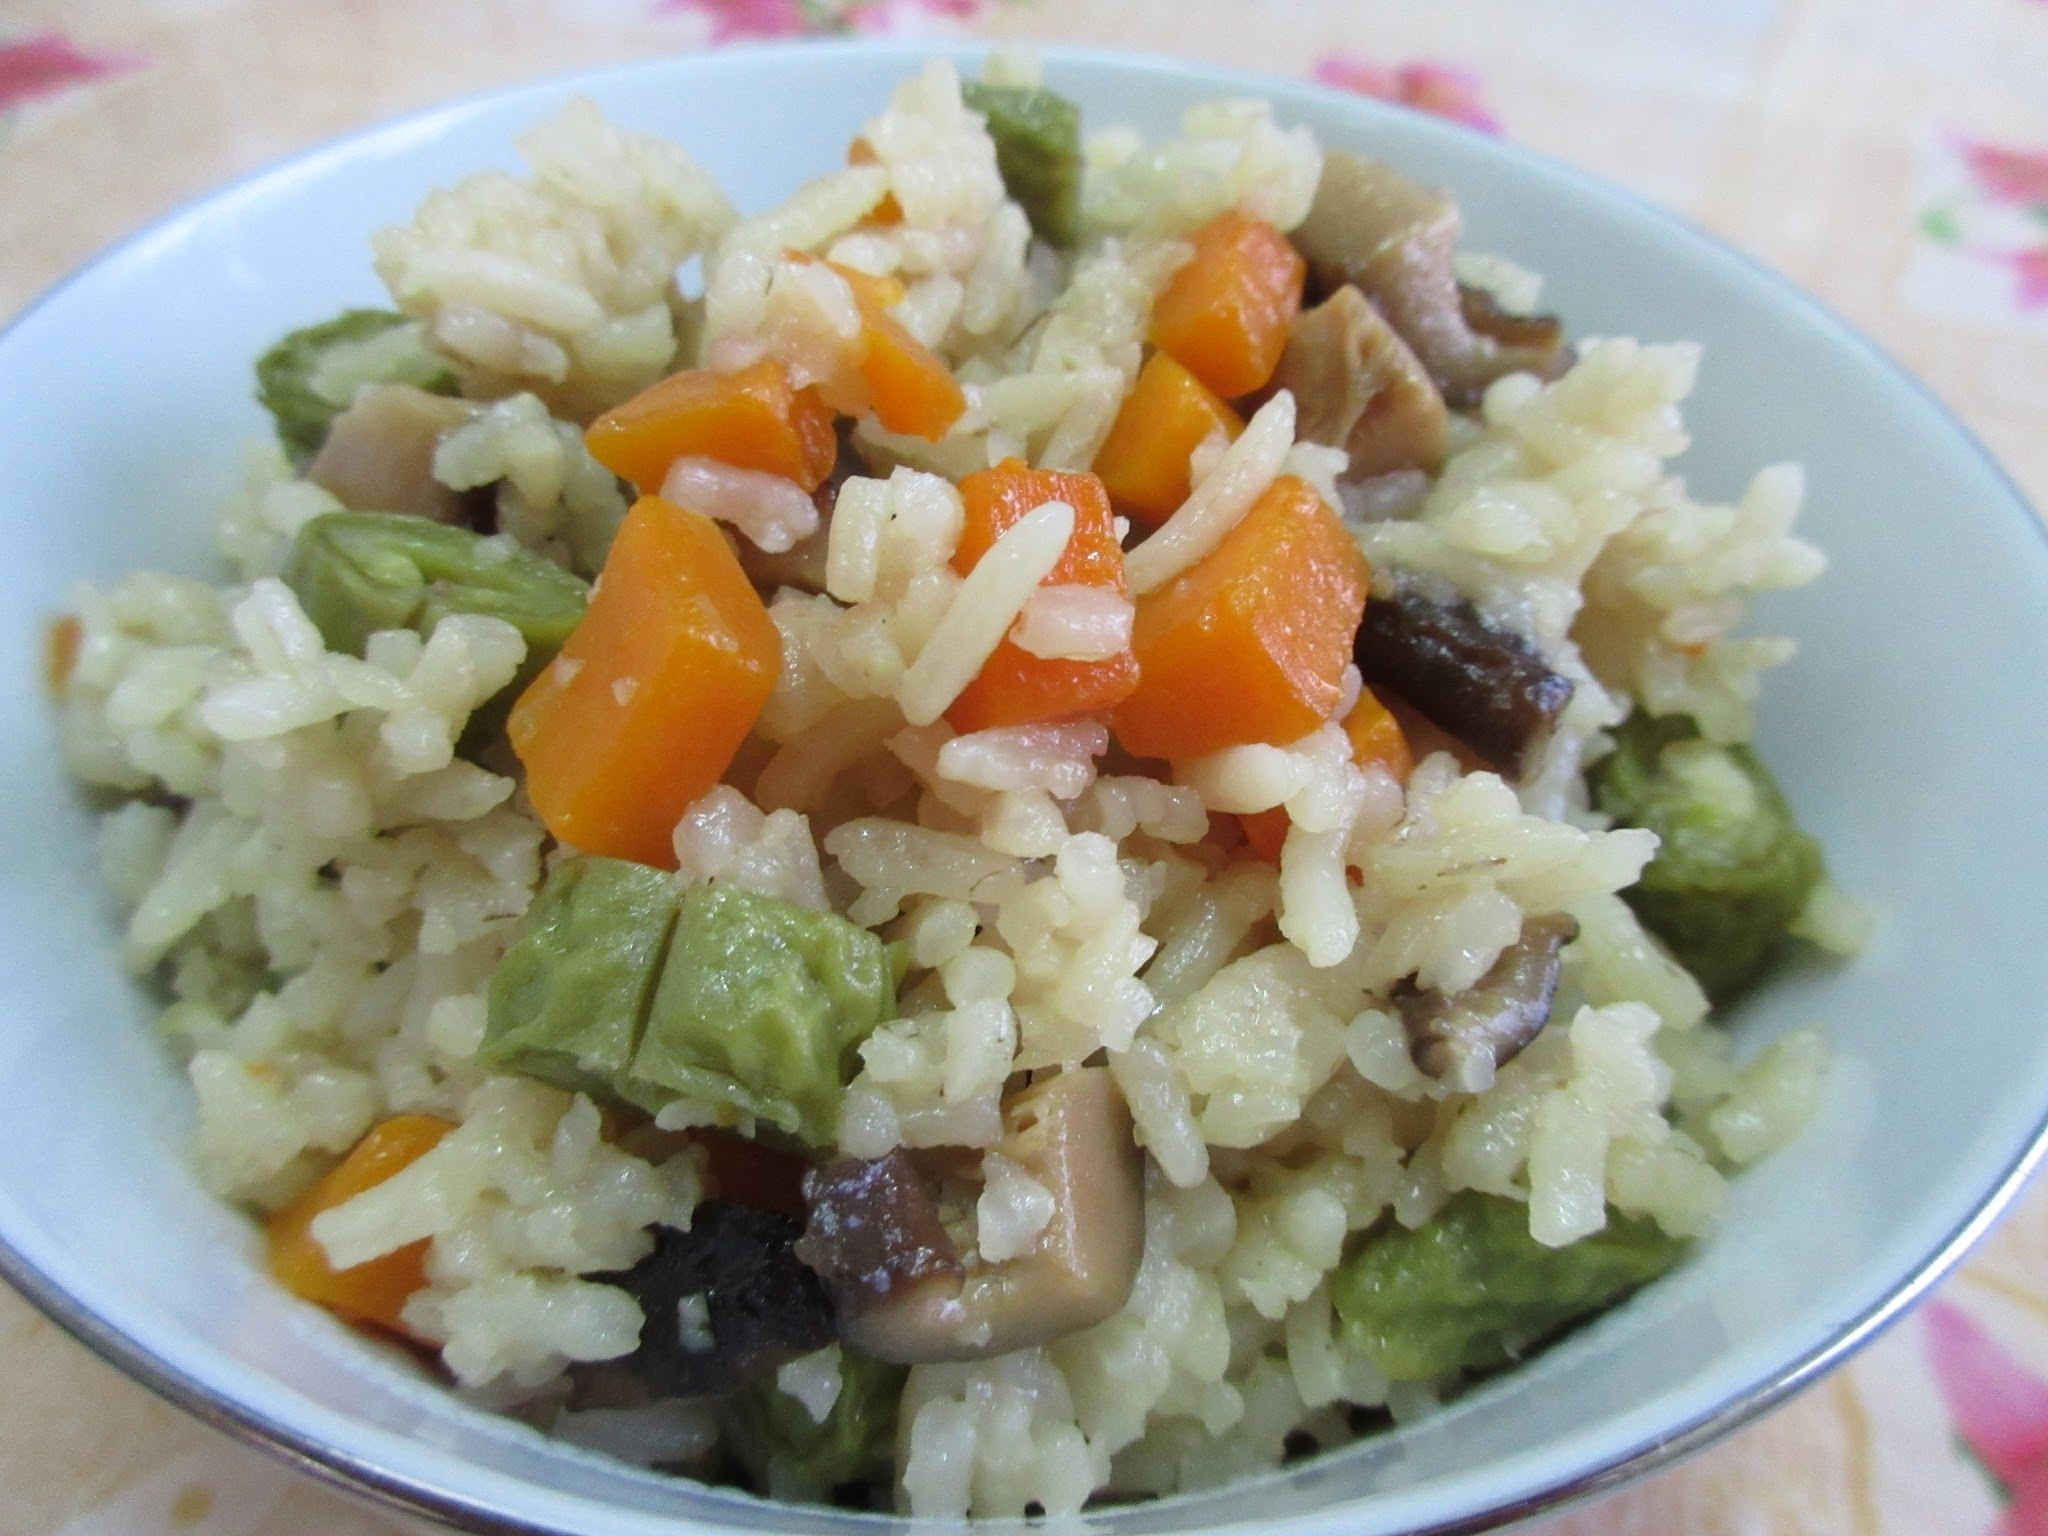 Savoury Vegetarian Rice 斋饭